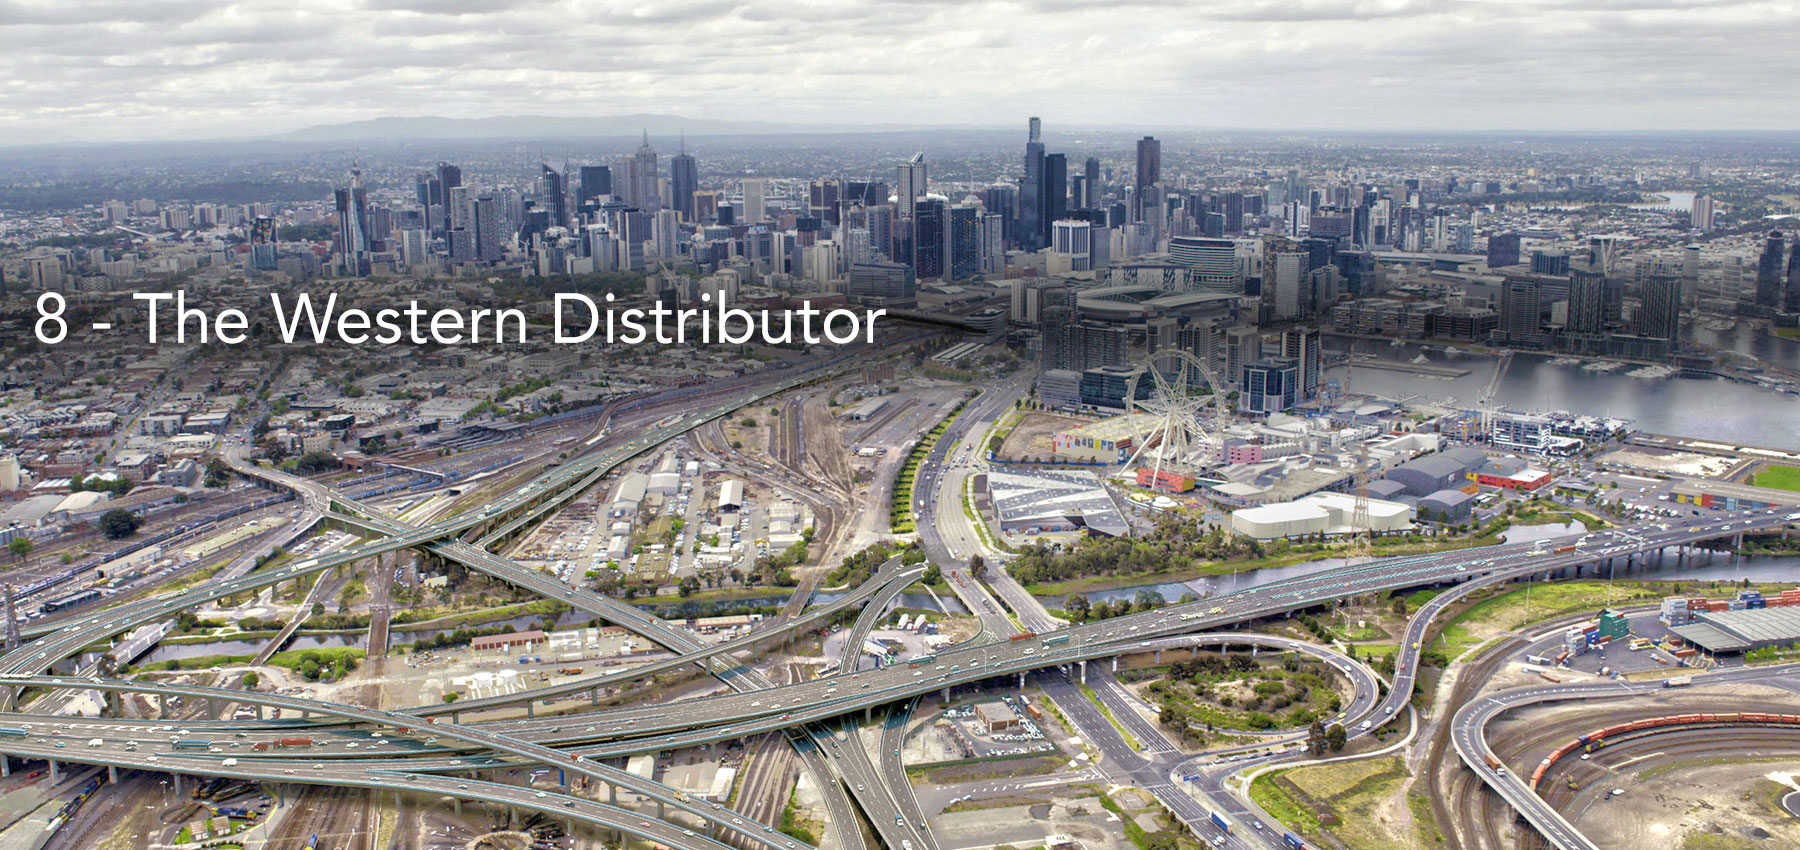 Transurban's plans to have roads and tollways from the Western Distributor cutting across the E-Gate site .